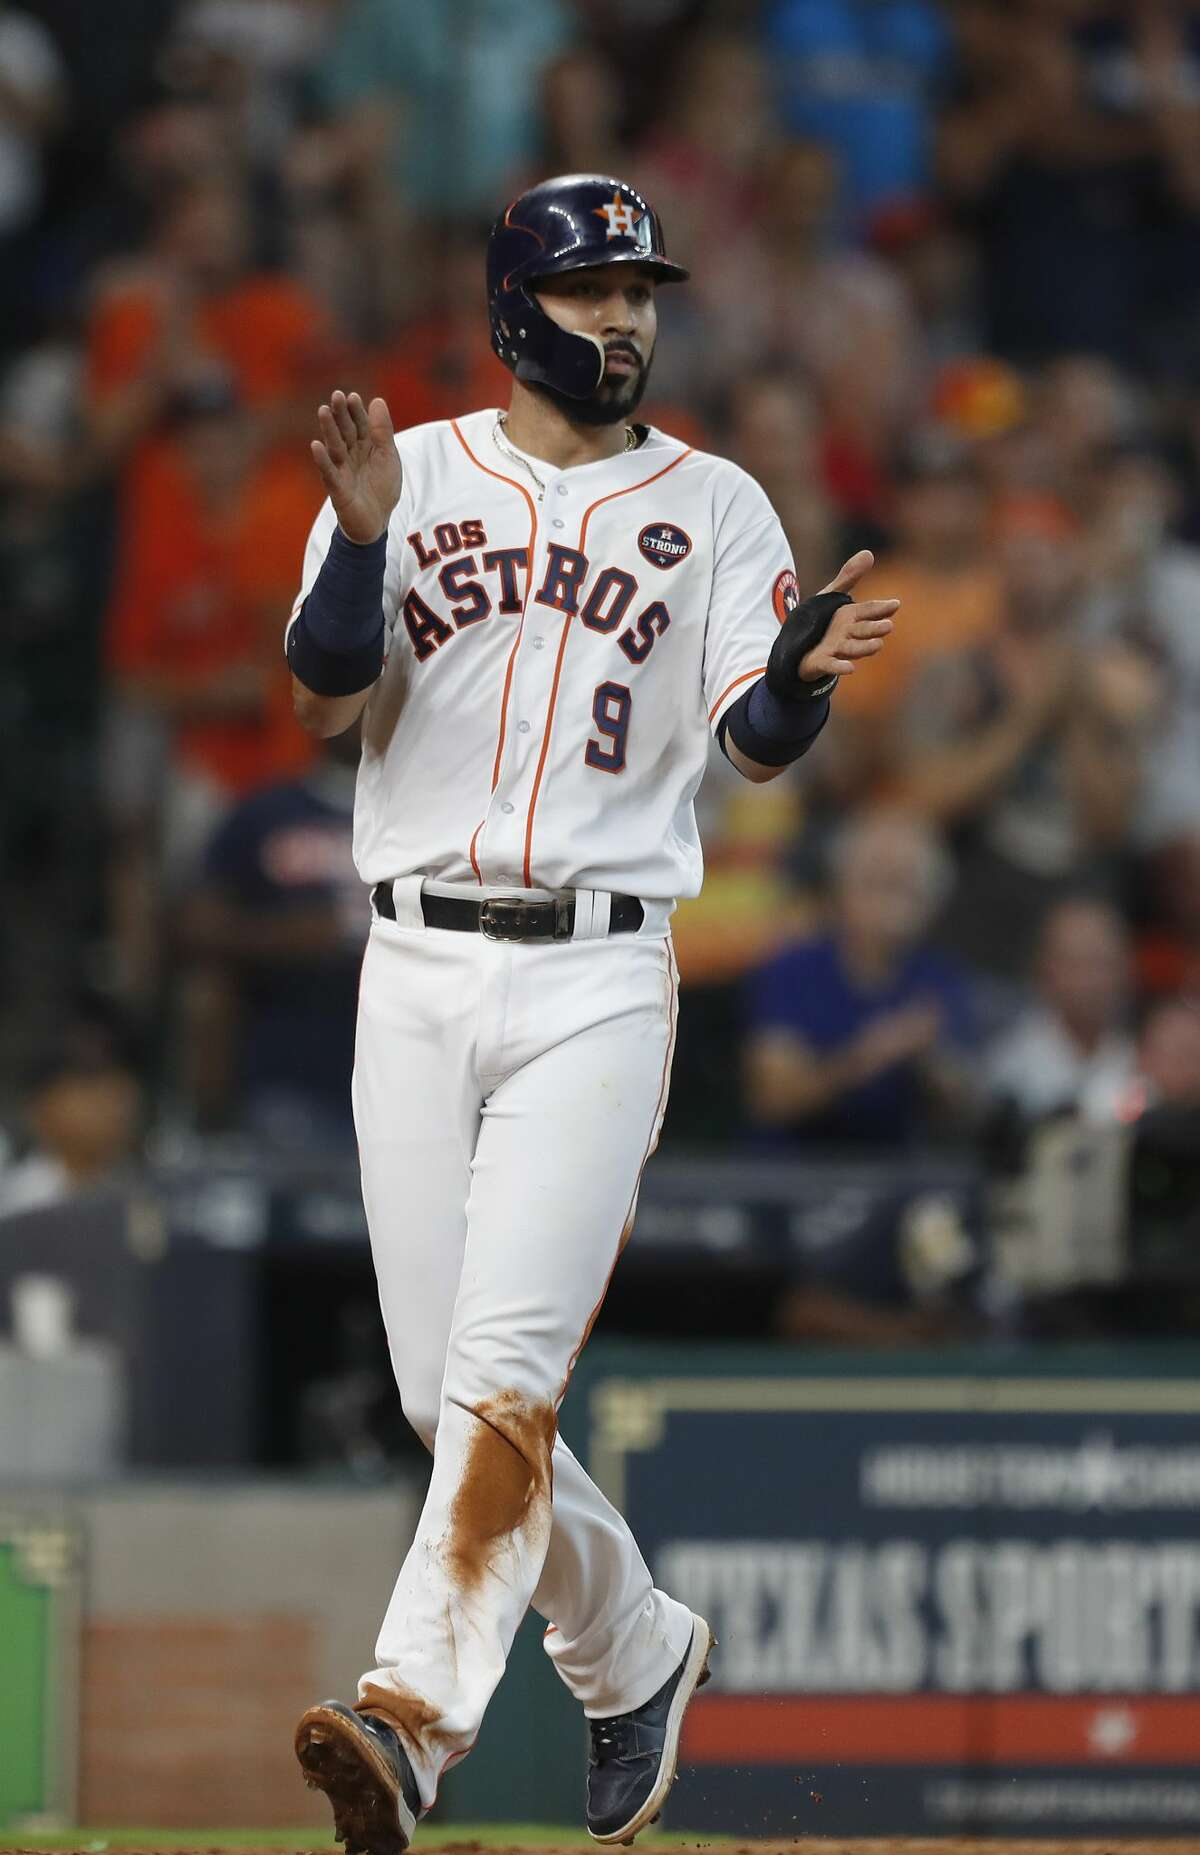 Houston Astros Marwin Gonzalez (9) claps for Carlos Correa as he scored a run on his RBI single during the seventh inning of an MLB baseball game at Minute Maid Park, Saturday, Sept. 23, 2017, in Houston. ( Karen Warren / Houston Chronicle )